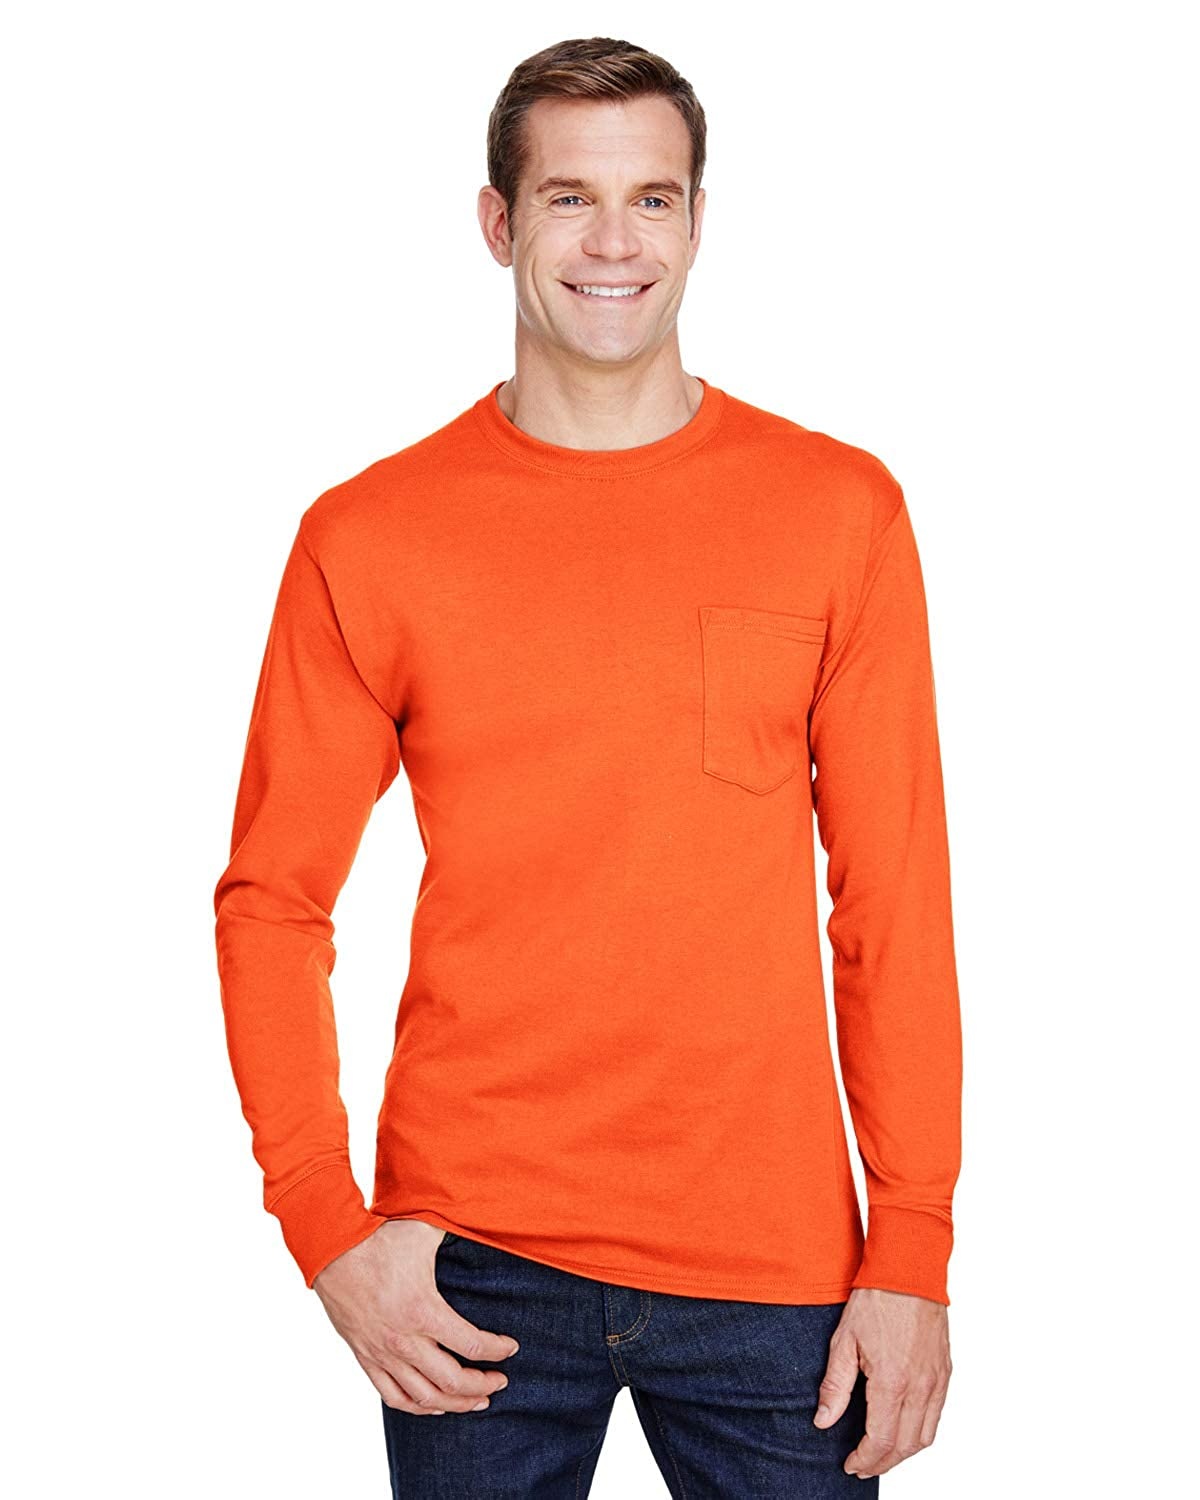 Hanes W120 Adult Workwear Long-Sleeve Pocket T-Shirt